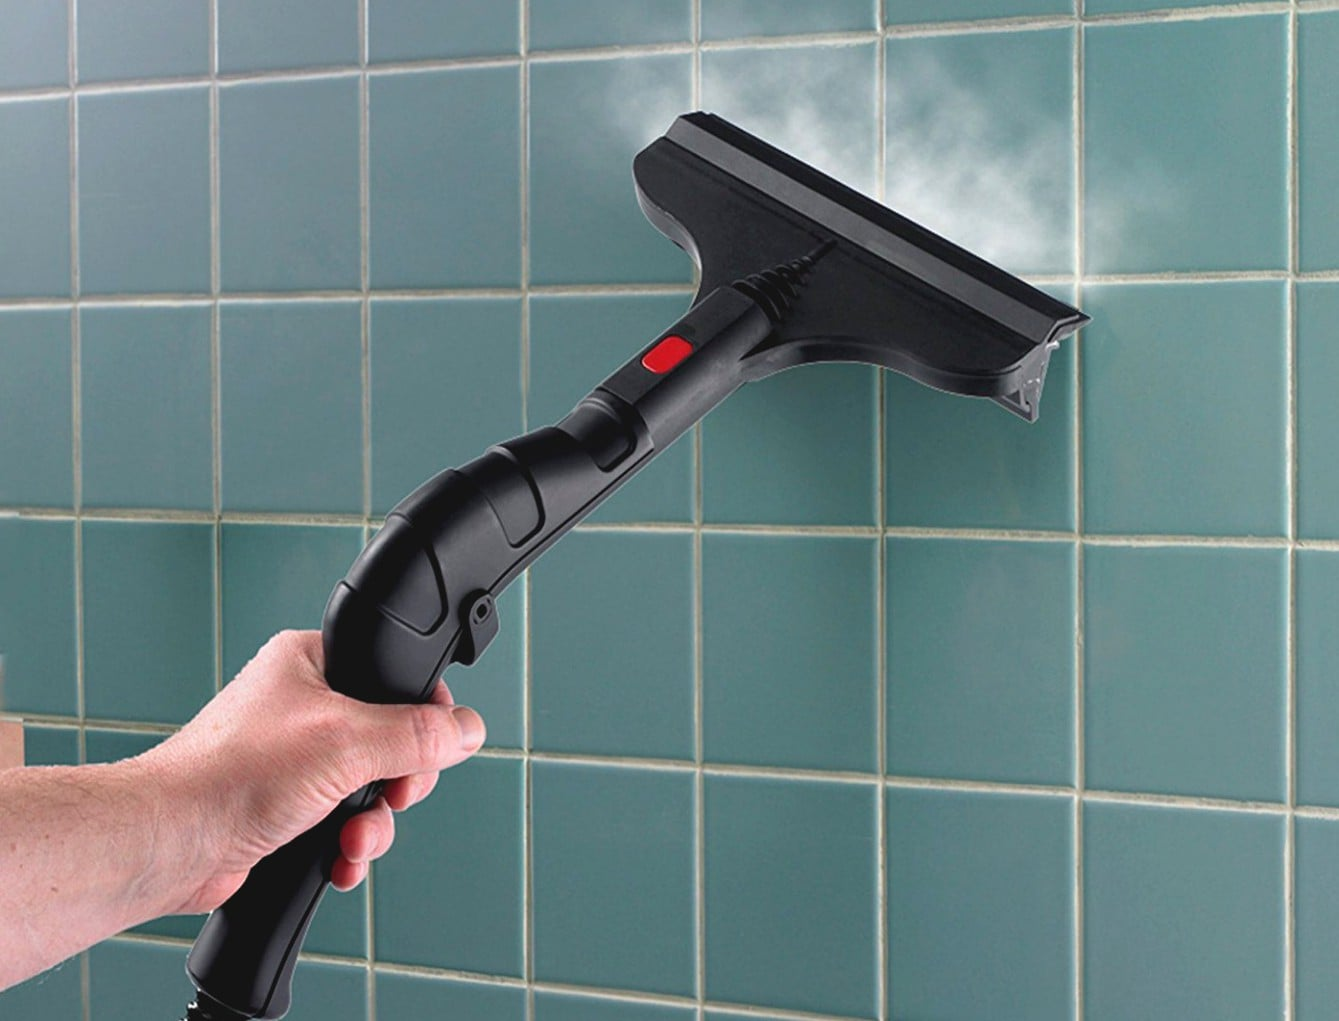 5 Best Steam Cleaner For Tile Floors And Grout Review 2018 Buying